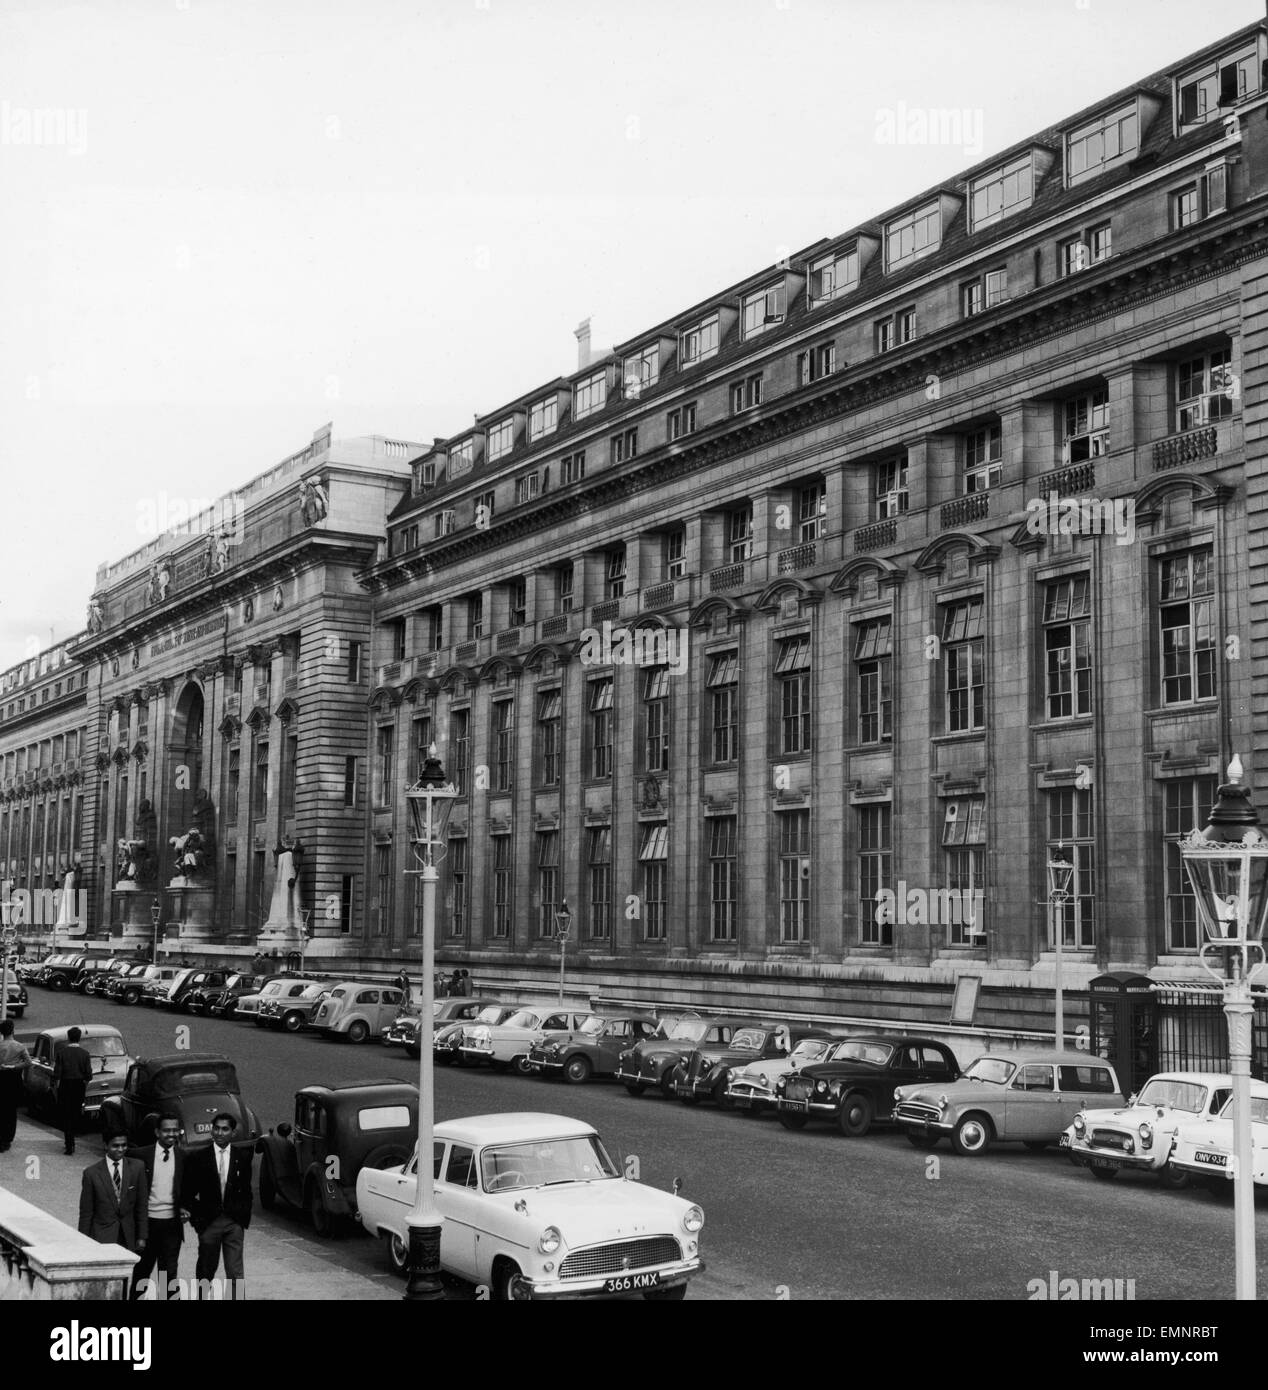 Cars parked outside the Imperial College of Science and technology in South Kensington, London. Circa 1960. - Stock Image